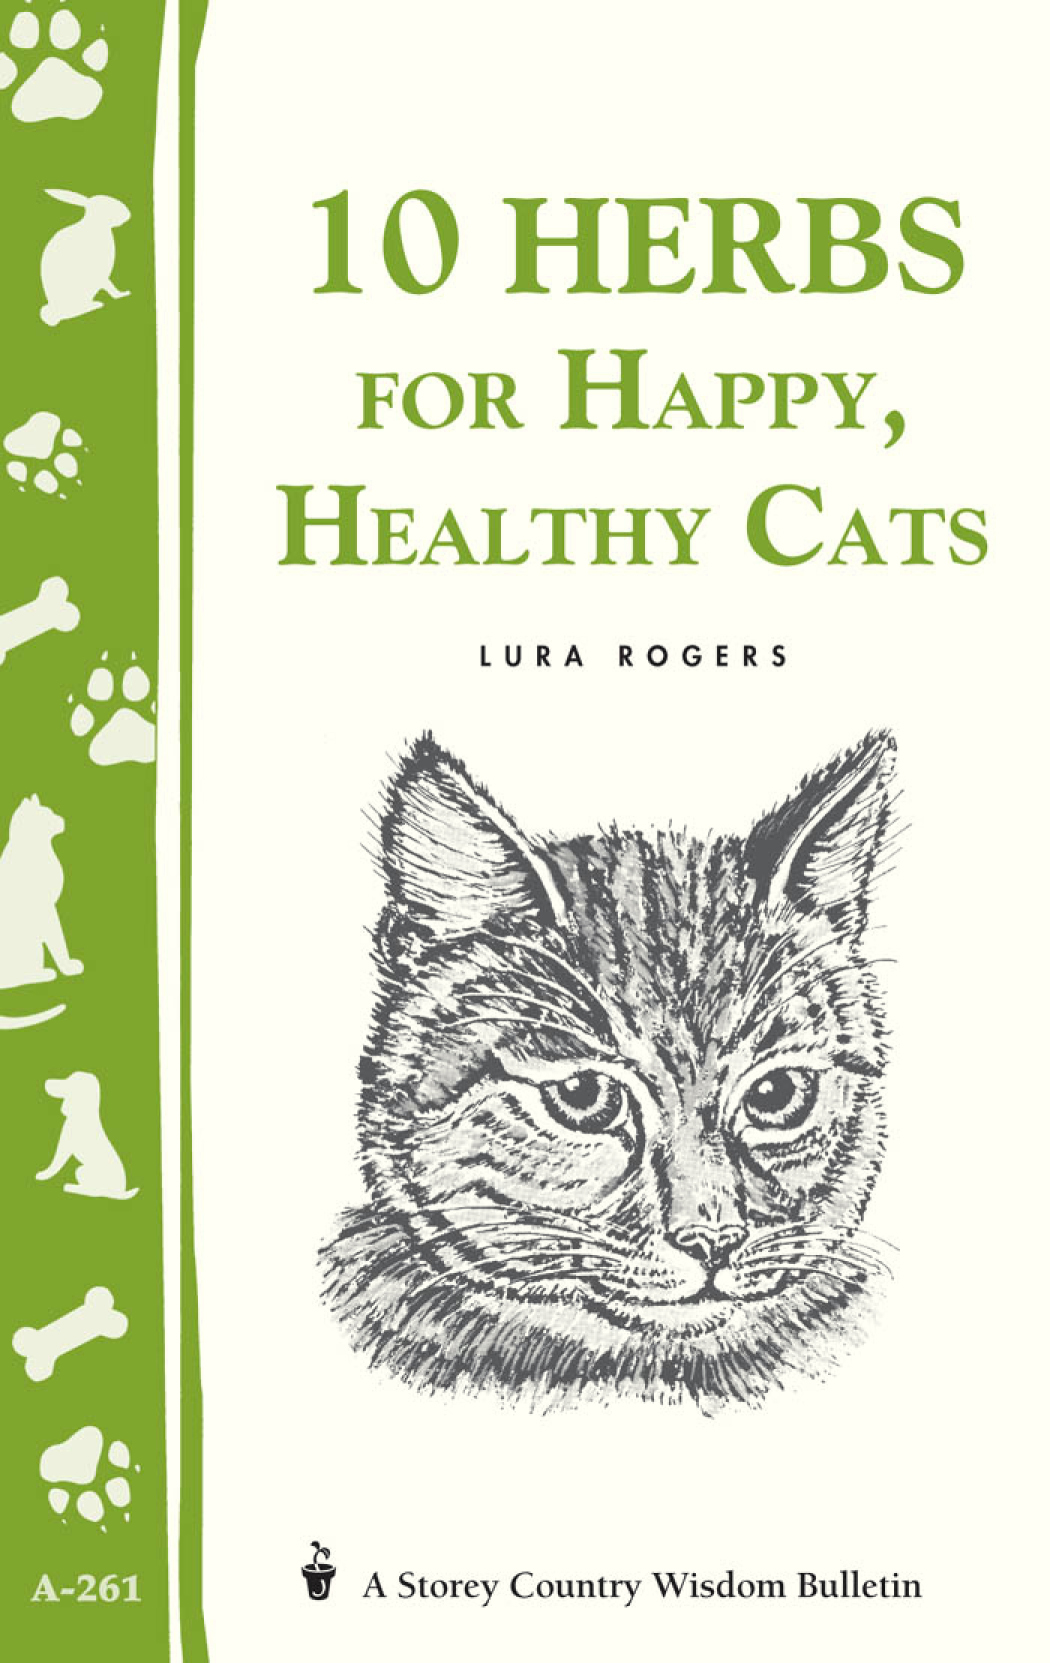 10 Herbs for Happy, Healthy Cats (Storey's Country Wisdom Bulletin A-261) - Lura Rogers